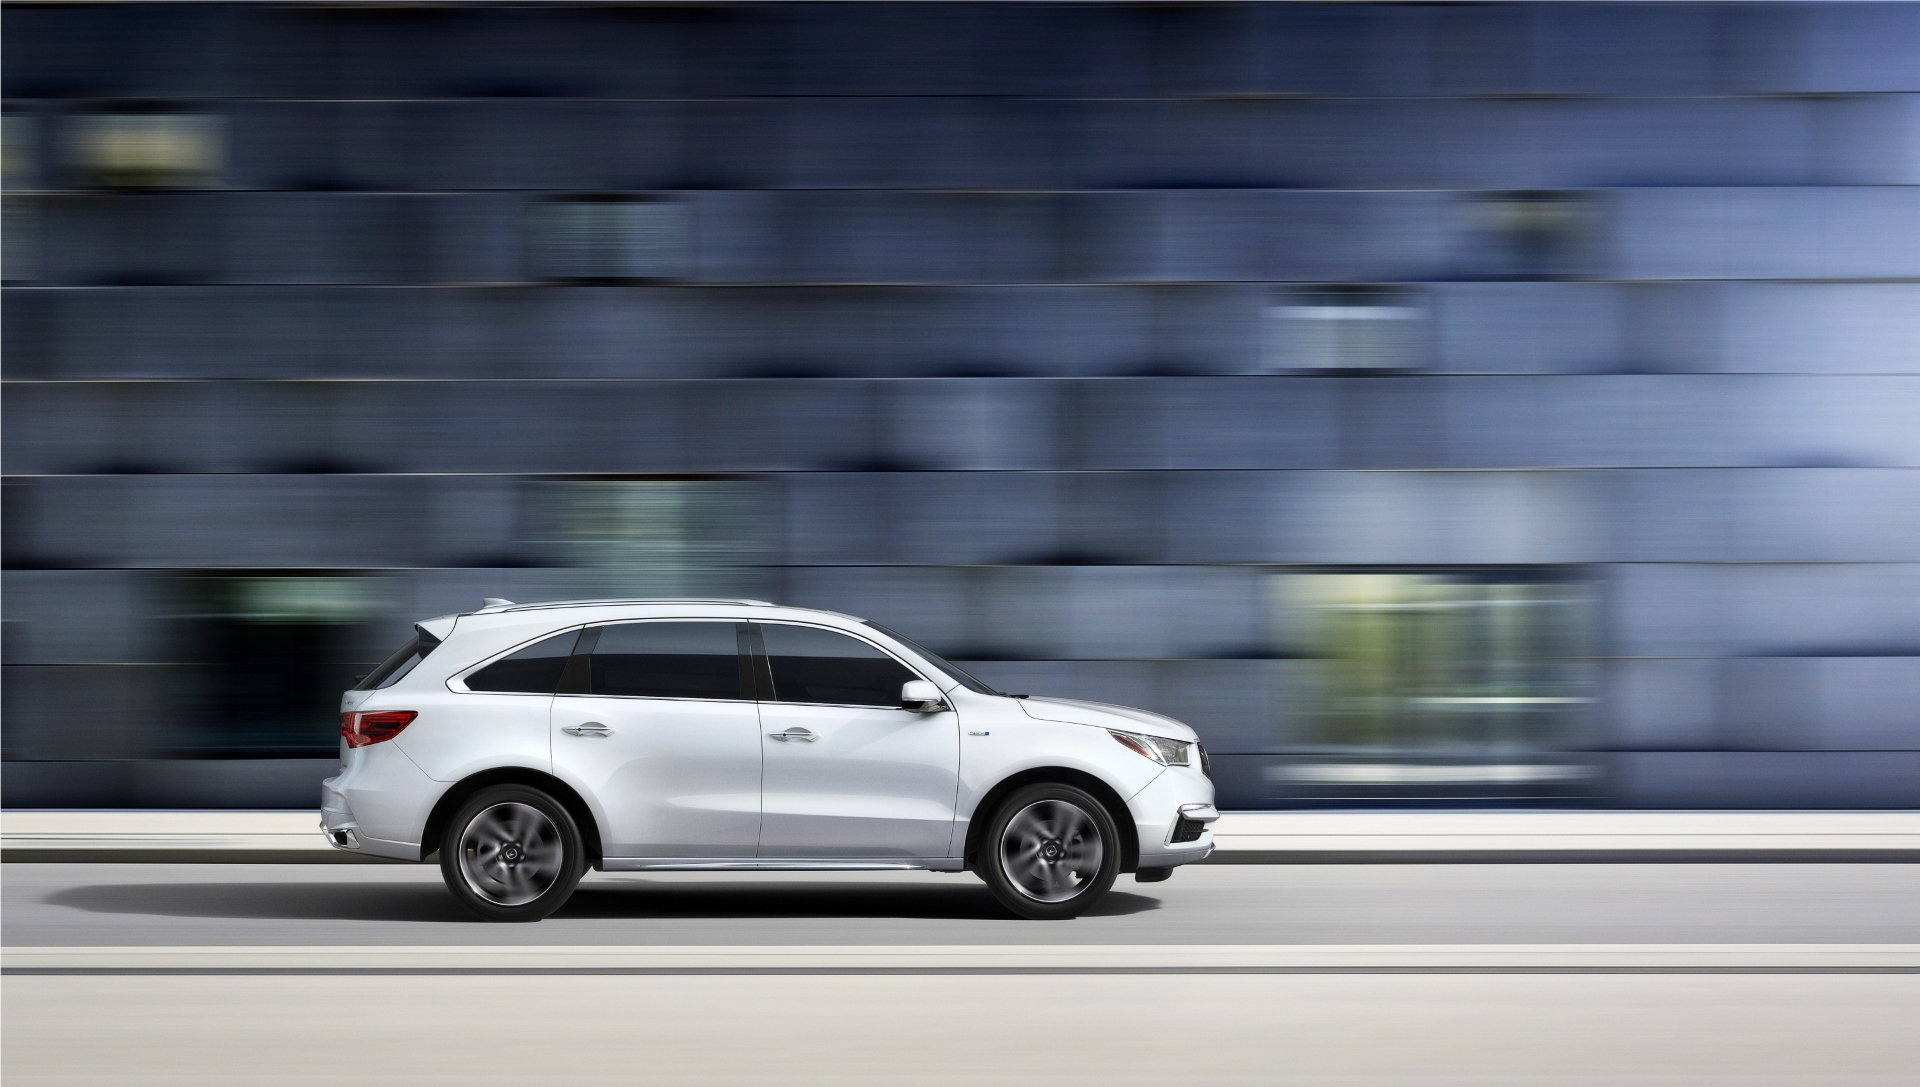 2017 acura mdx gas mileage the car connection